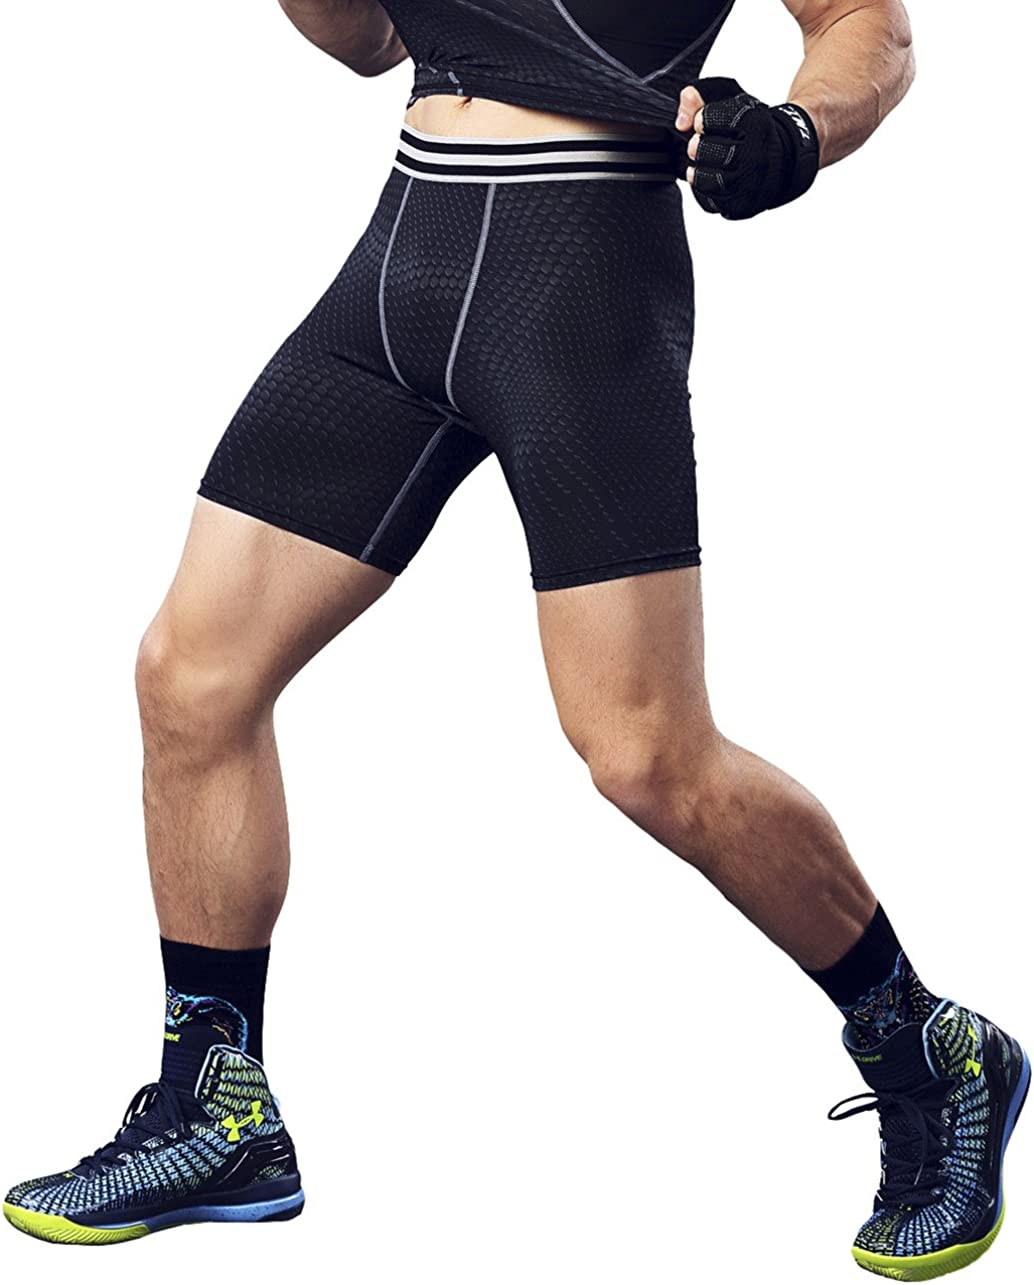 Cityoung Mens Compression Shorts Cool Dry Sports Tights Training Baselayer